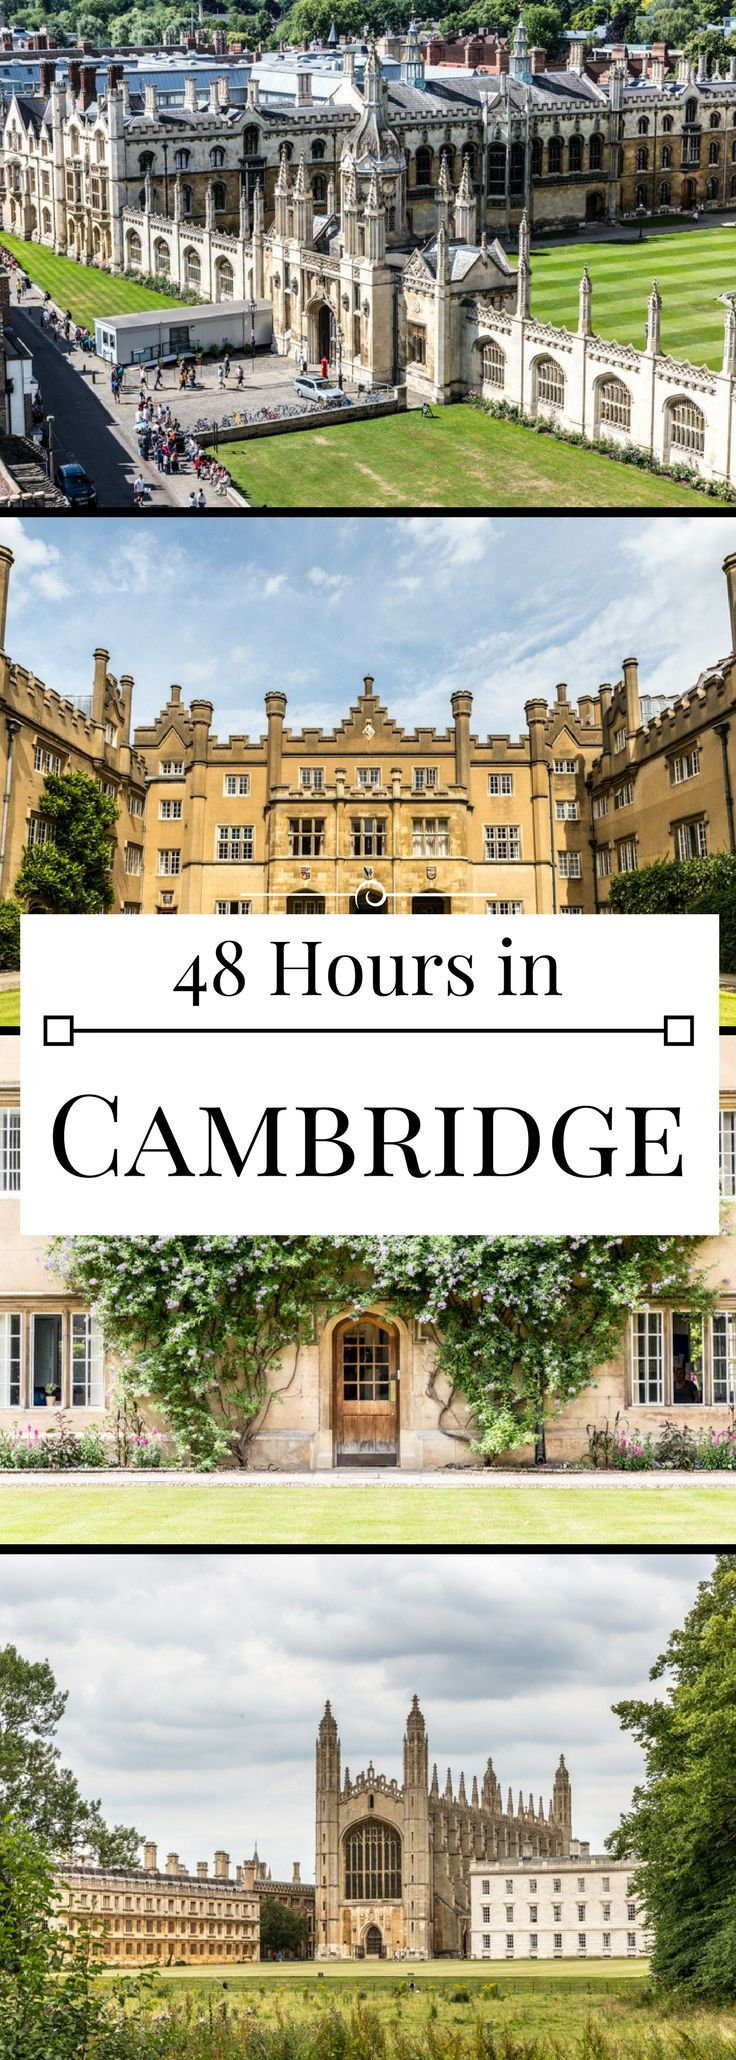 How to spend a lovely 48 hours in Cambridge, England